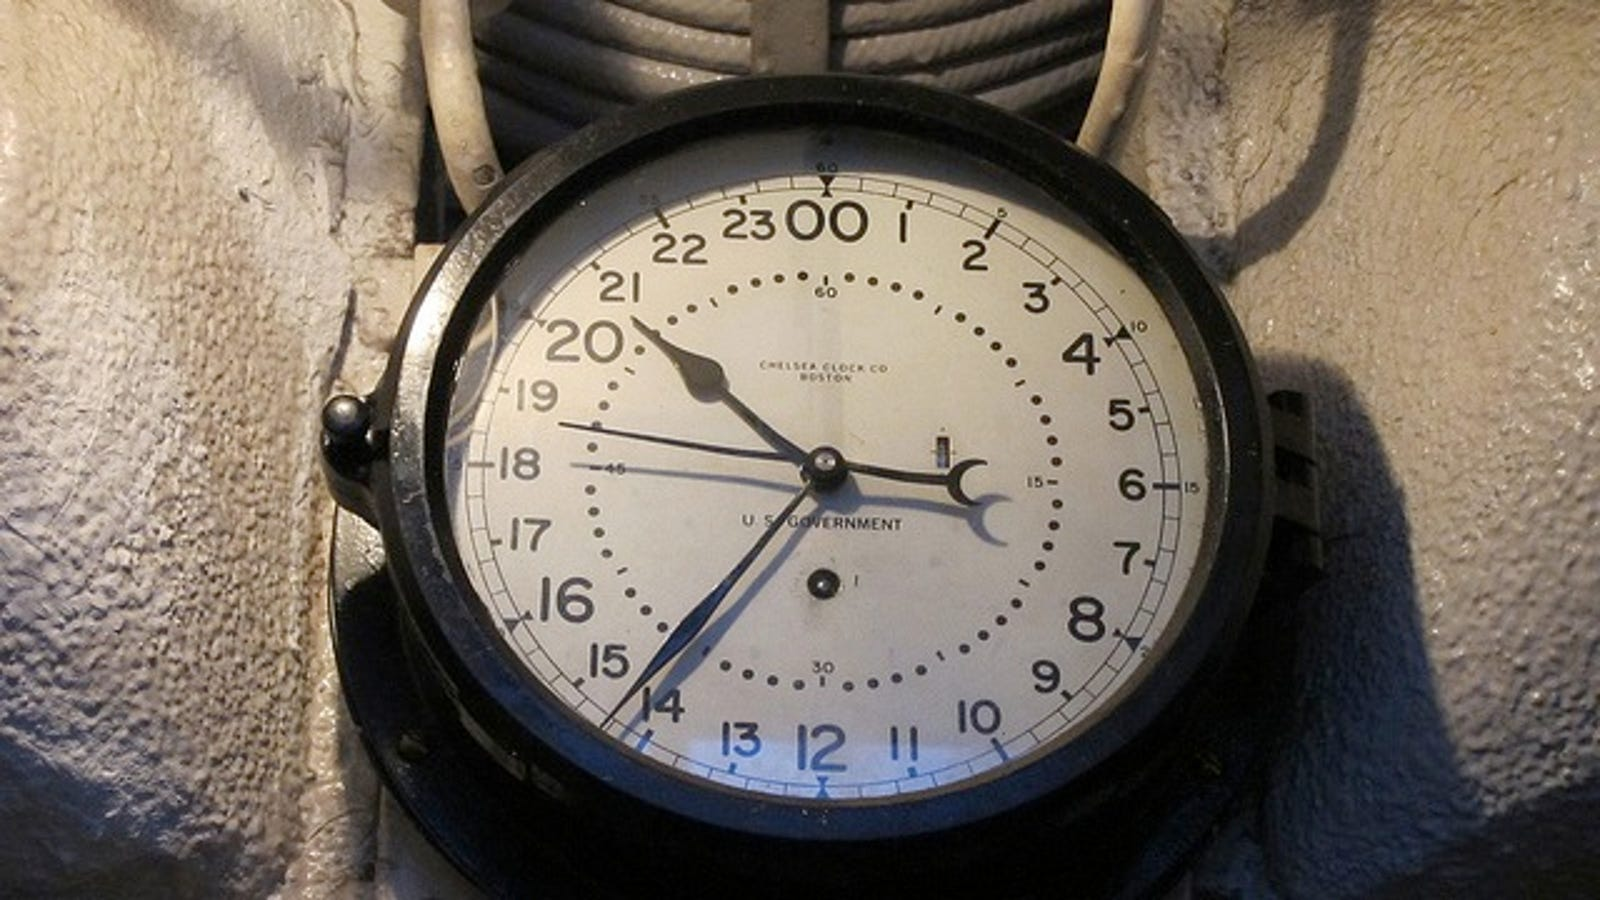 How to Quickly Convert Standard Time to Military Time